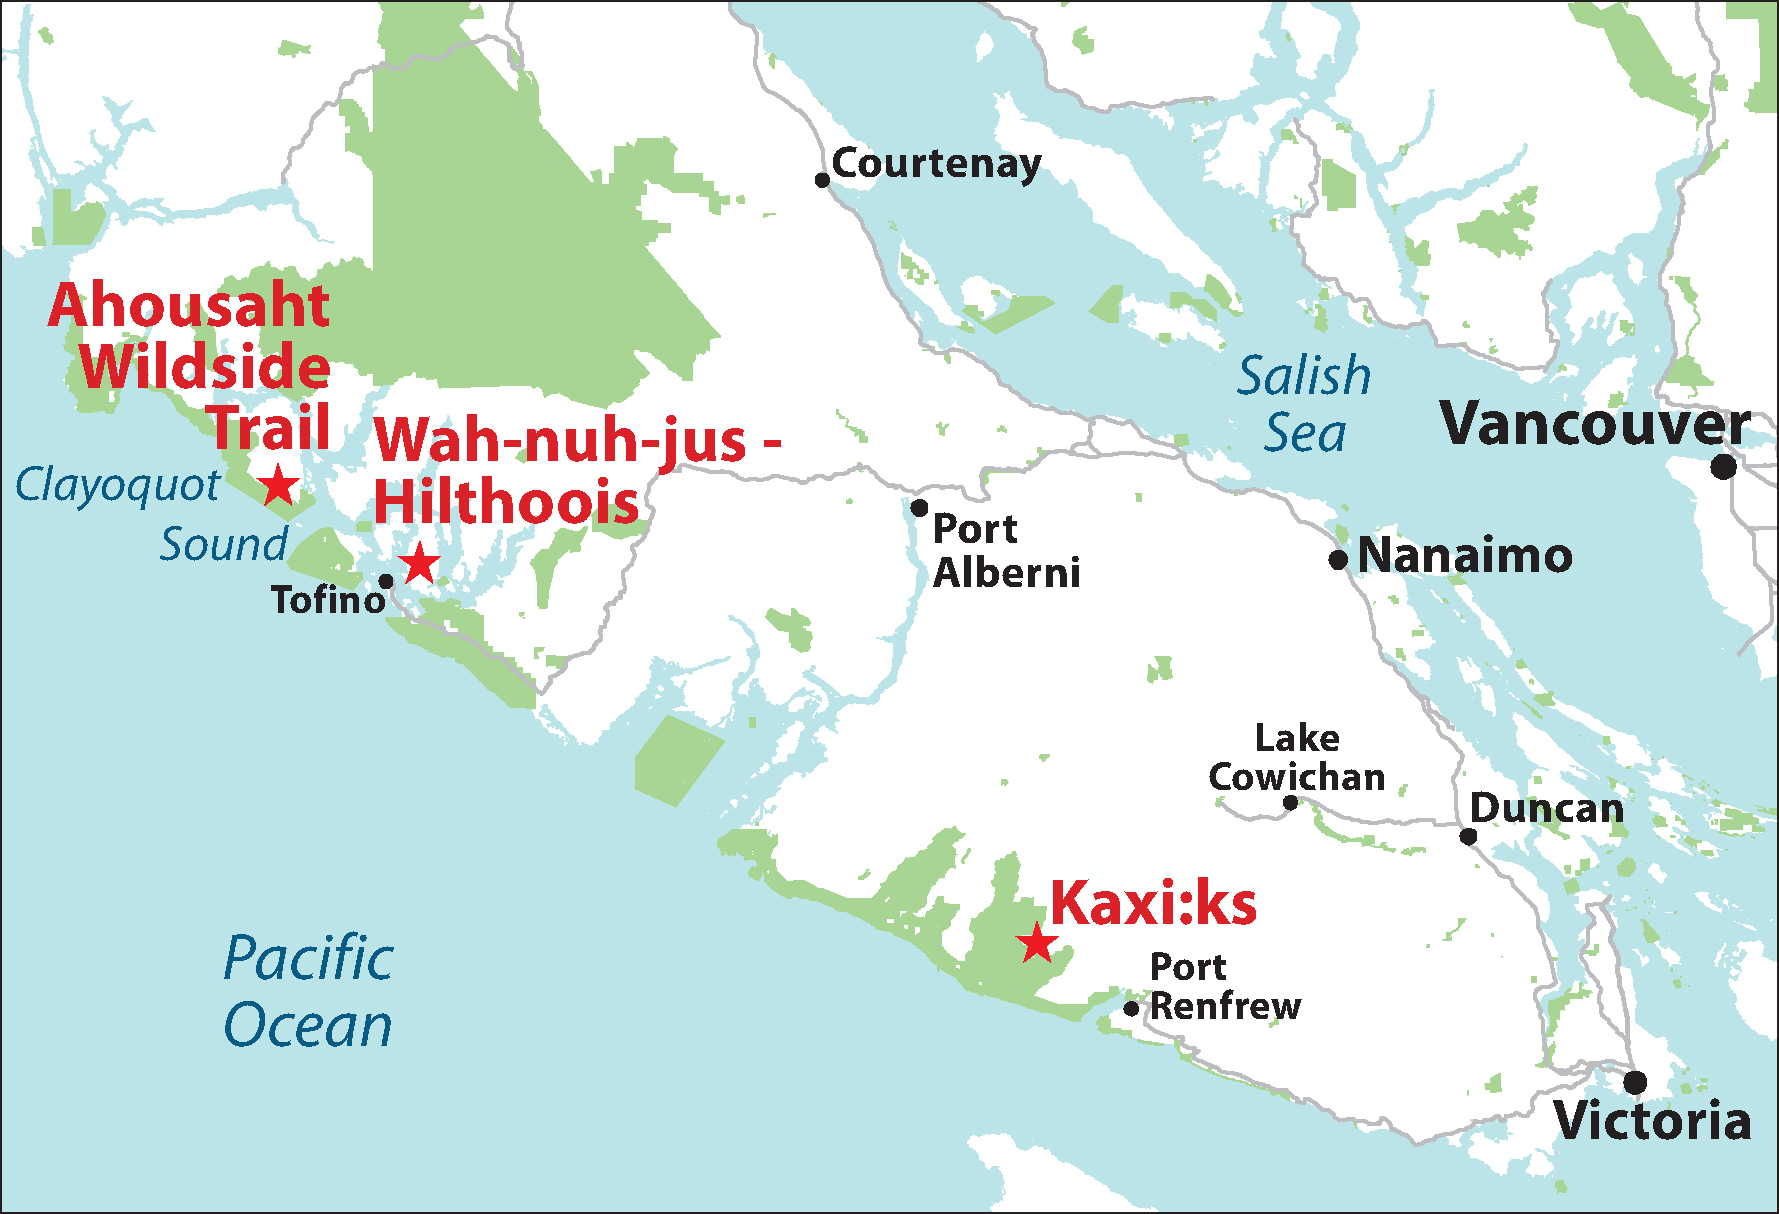 map of trail building locations on vancouver island